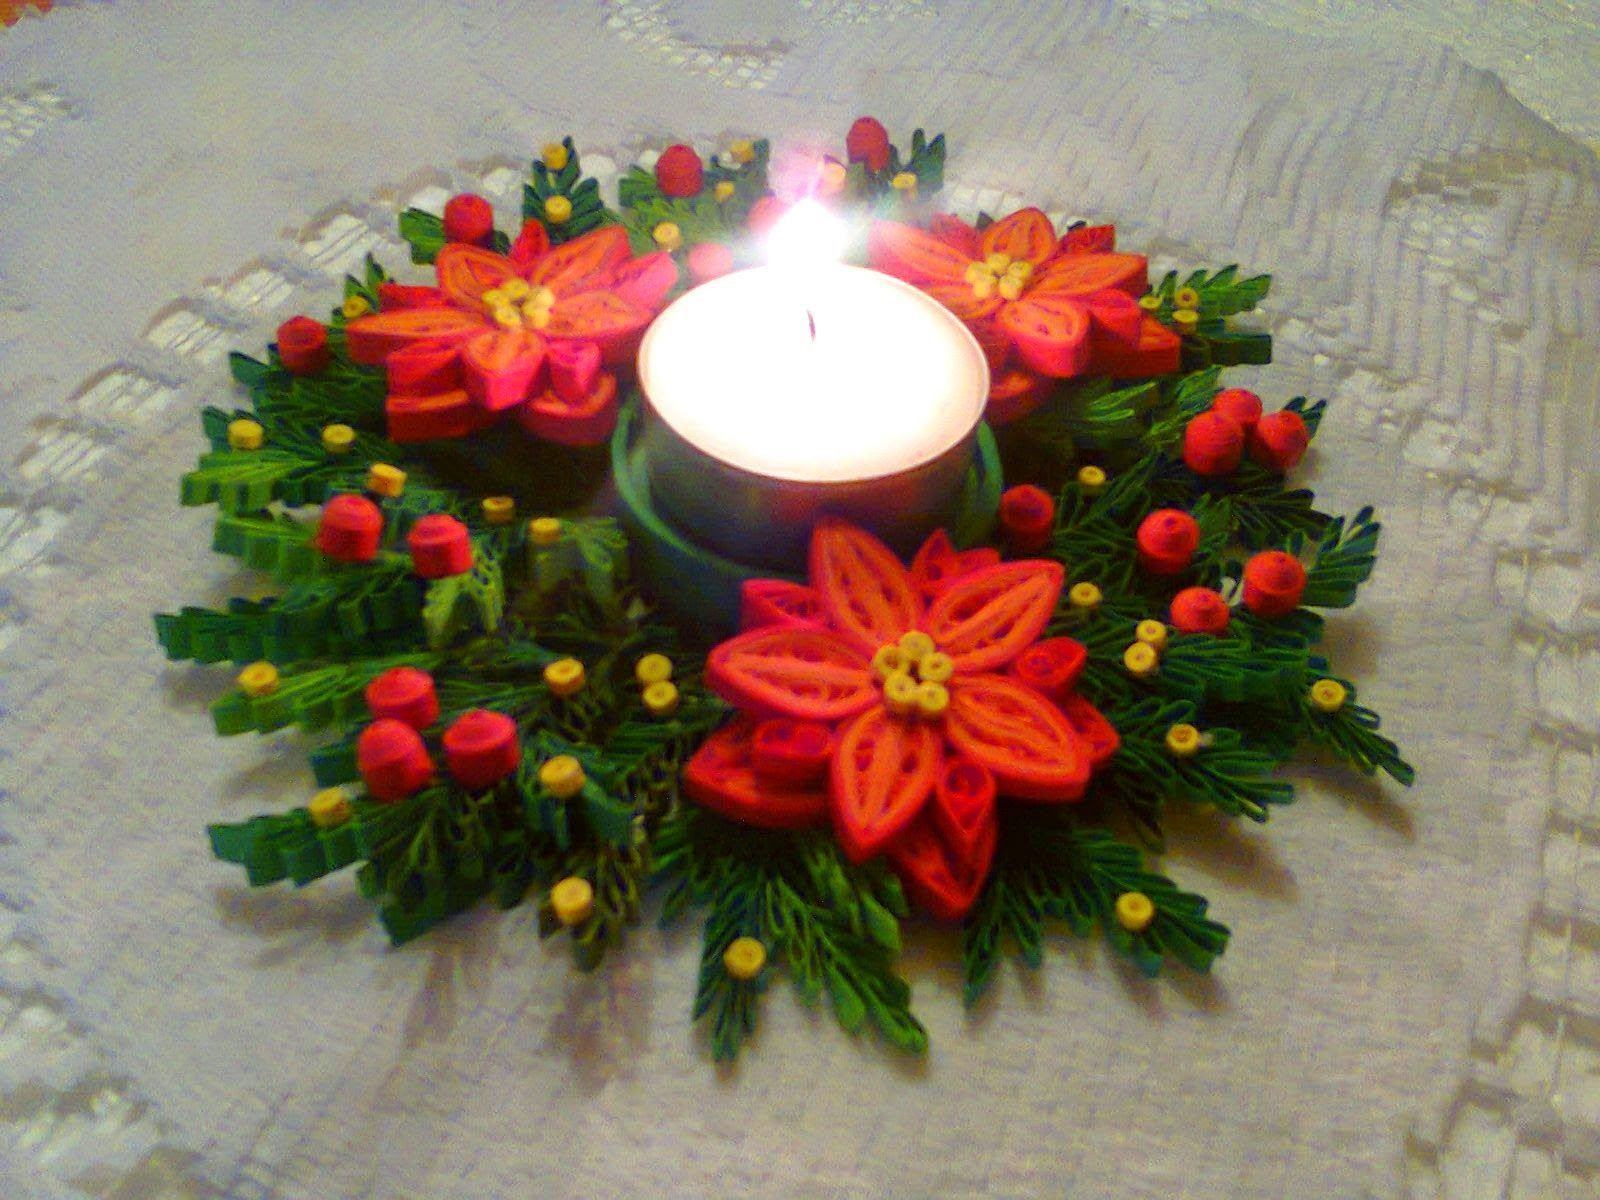 Rekodzielo Wolinki Moja Pasja Moje Hobby Quilling Christmas Quilling Work Quilling Candle Holder